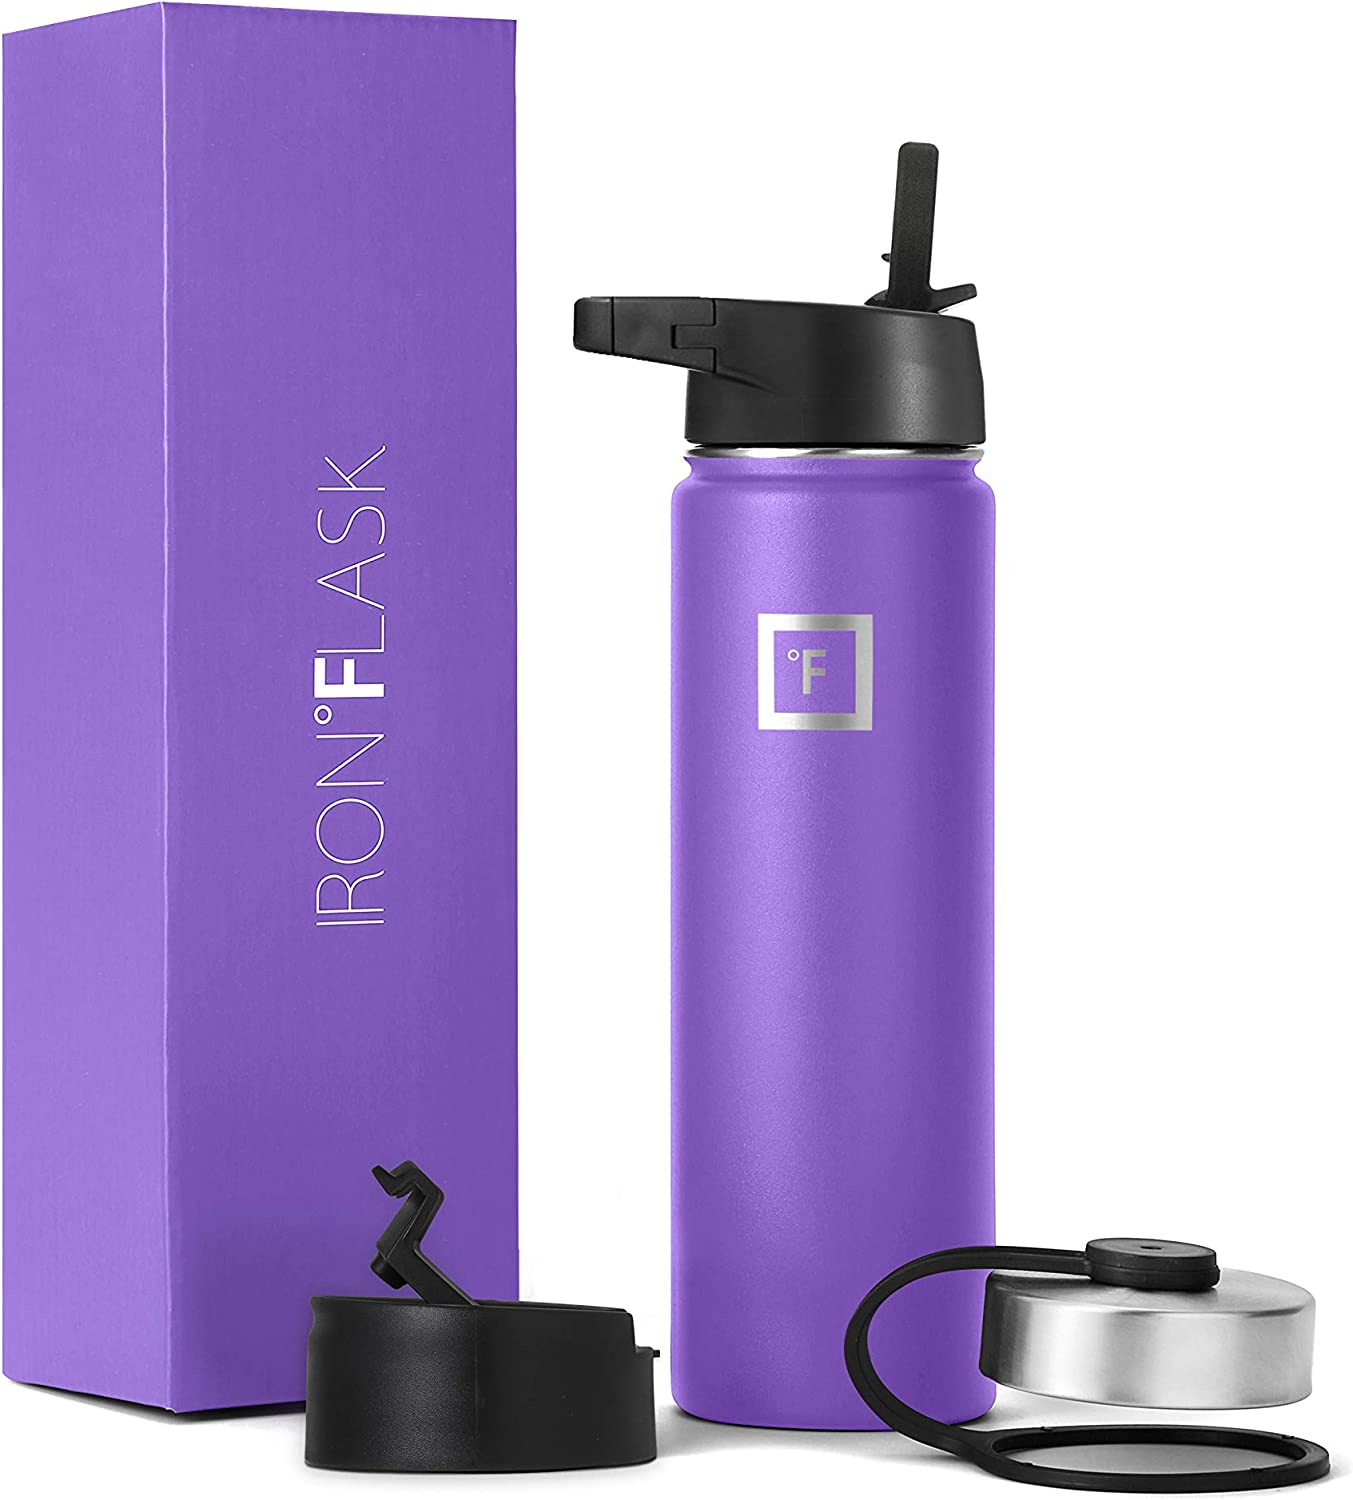 Iron Flask Sports Water Bottle - 22 Oz, 3 Lids (Straw Lid), Vacuum Insulated Stainless Steel, Hot Cold, Modern Double Walled, Simple Thermo Mug, Hydro Metal Canteen (Violet)